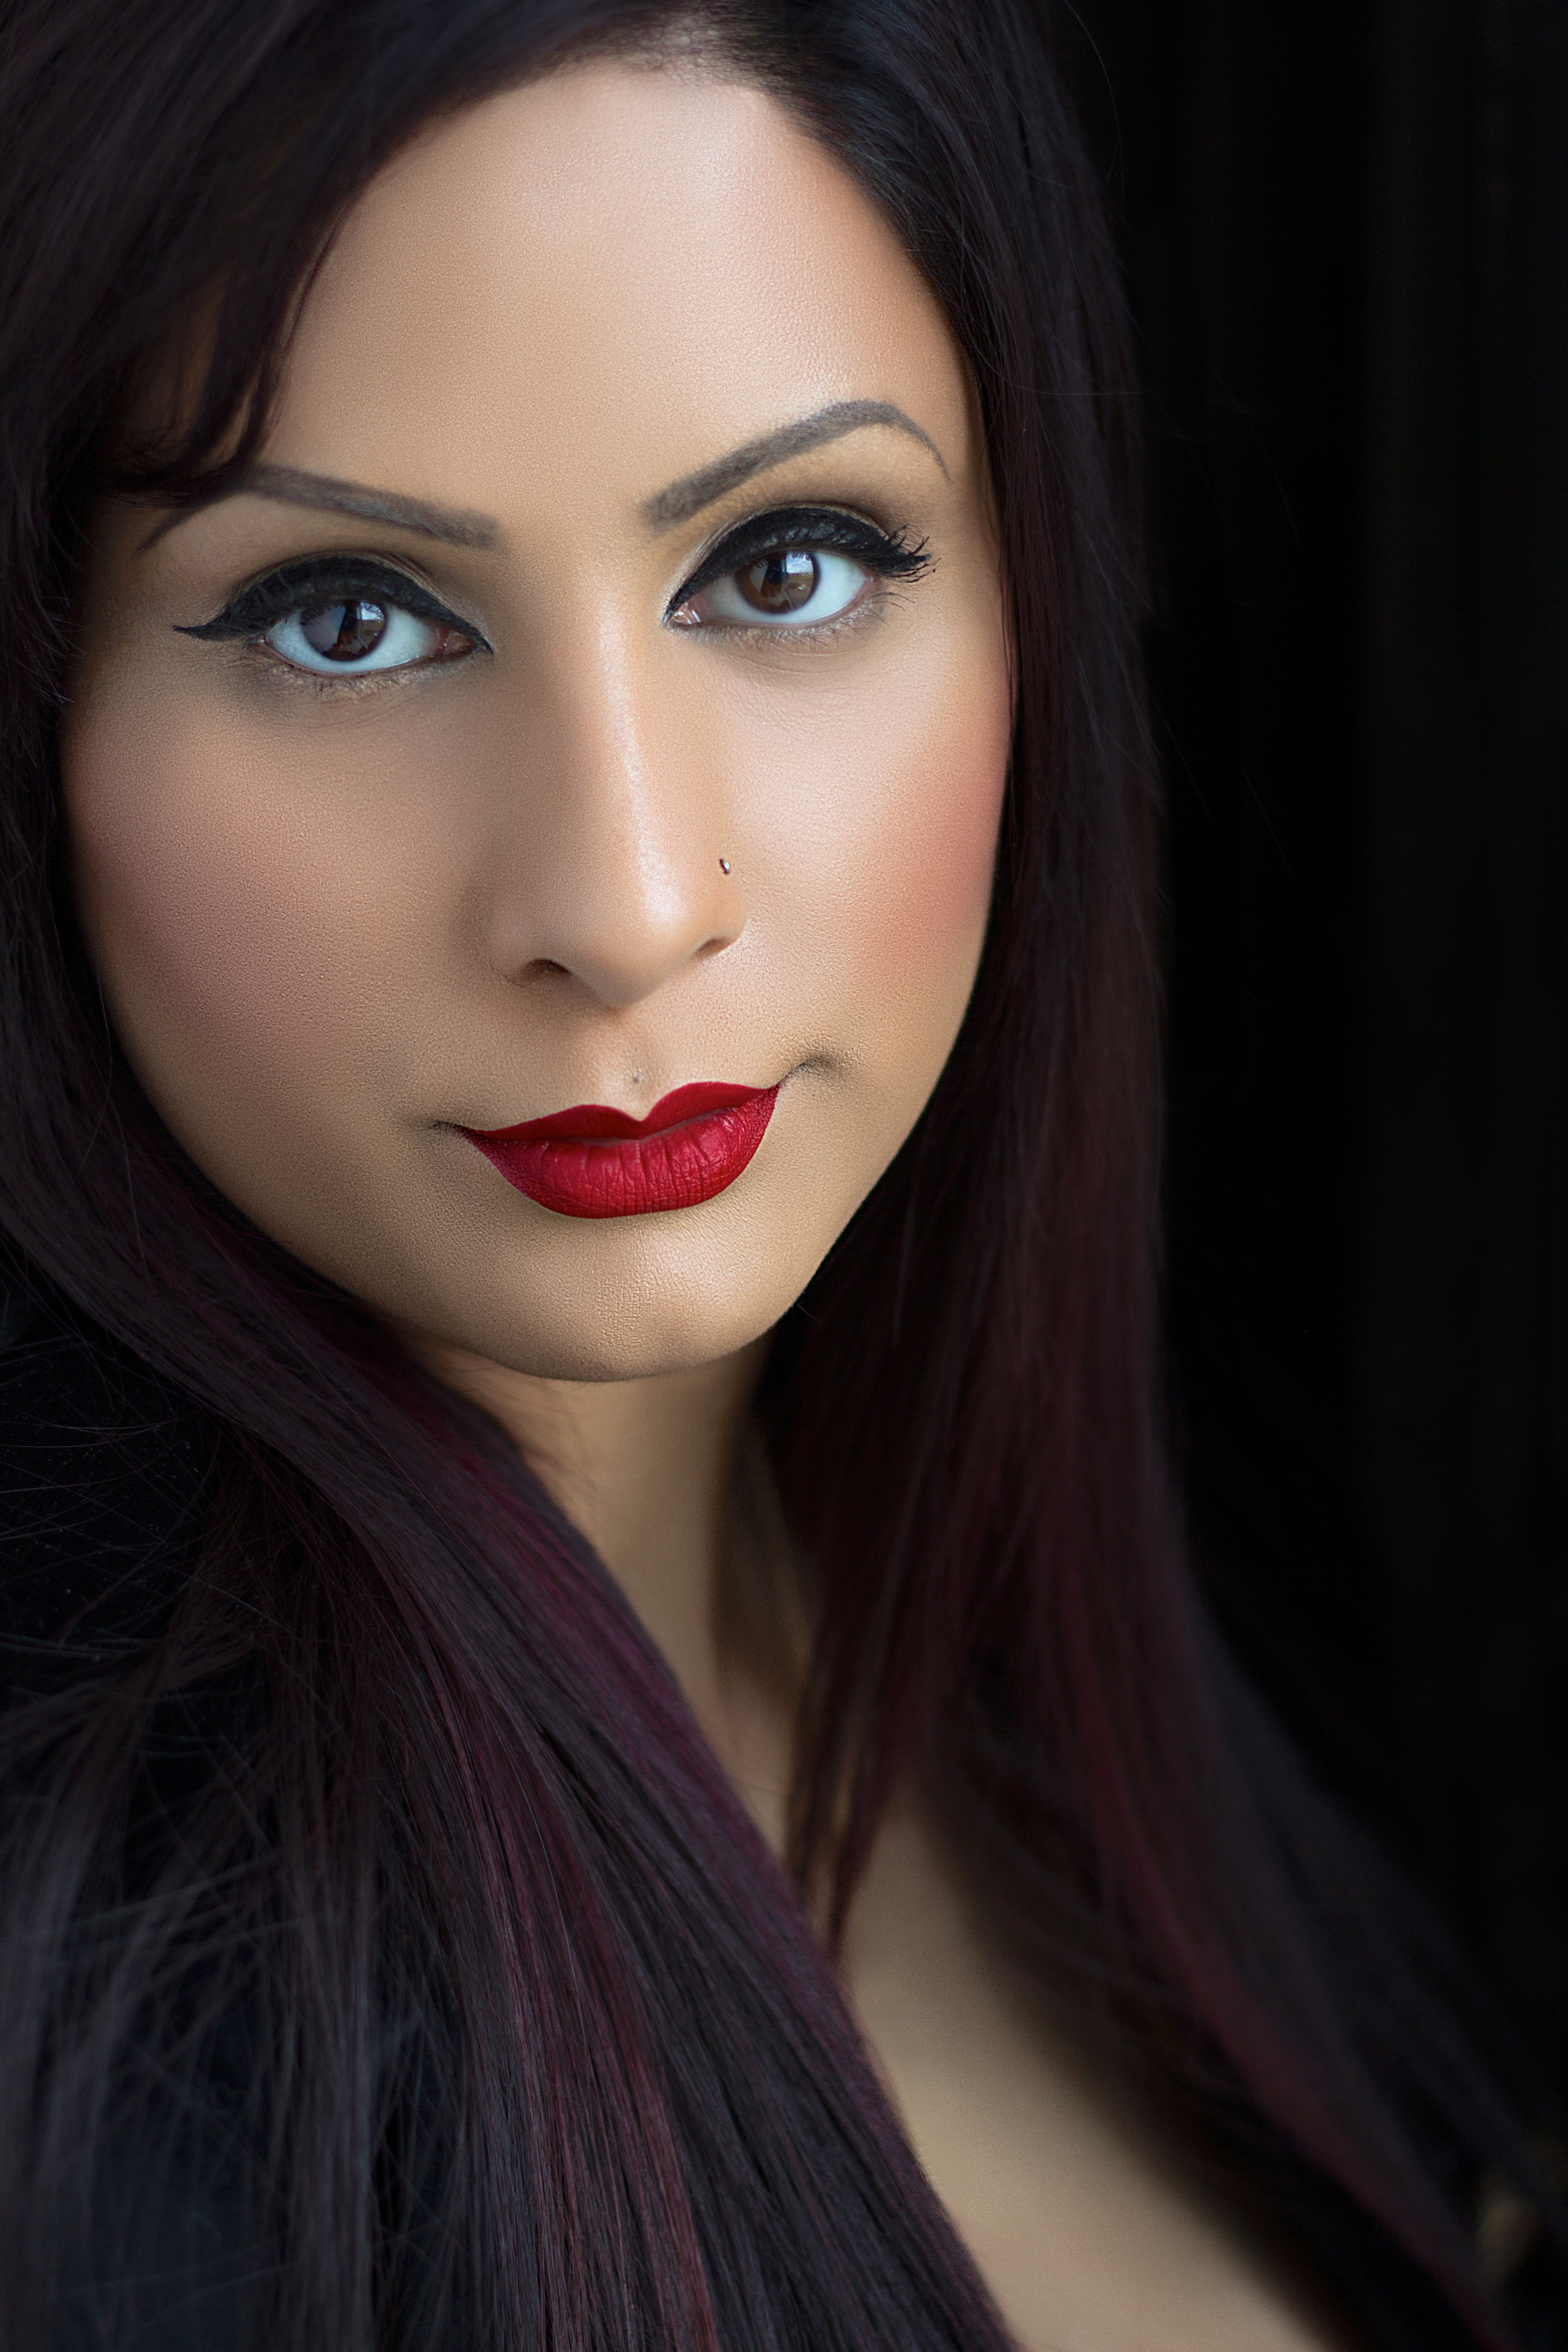 Finding Passion Through Peril An Interview With Makeup Artist Neetu Sahota